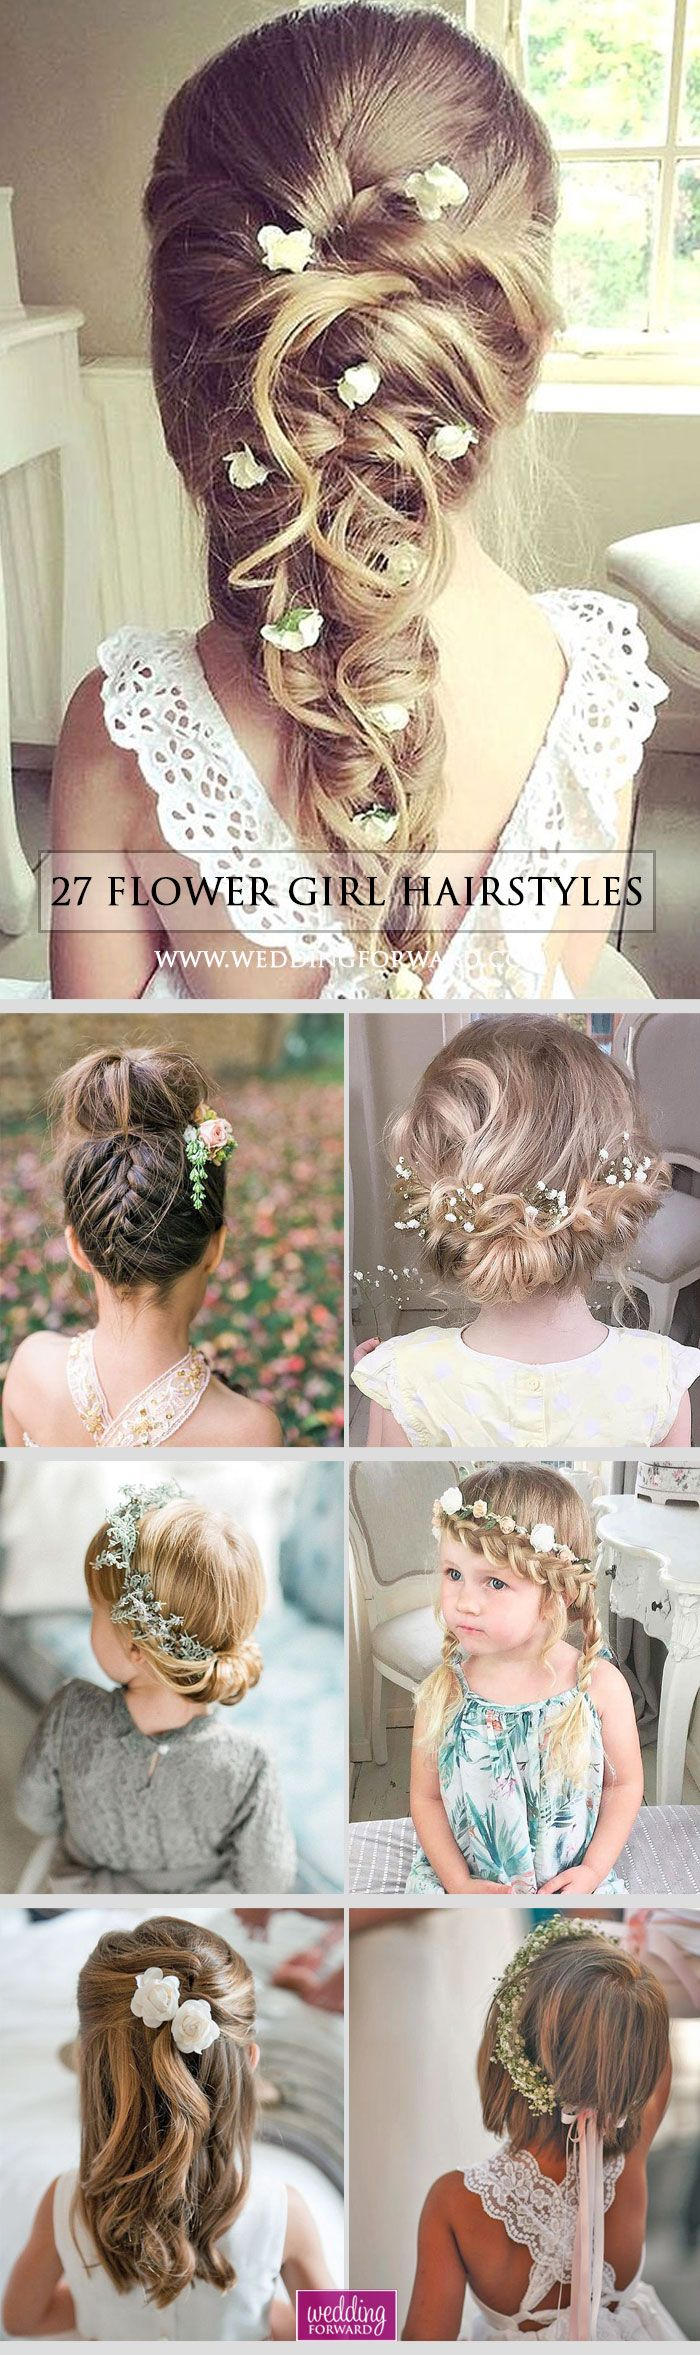 Awesome 1000 Ideas About Cute Girls Hairstyles On Pinterest Girl Short Hairstyles For Black Women Fulllsitofus